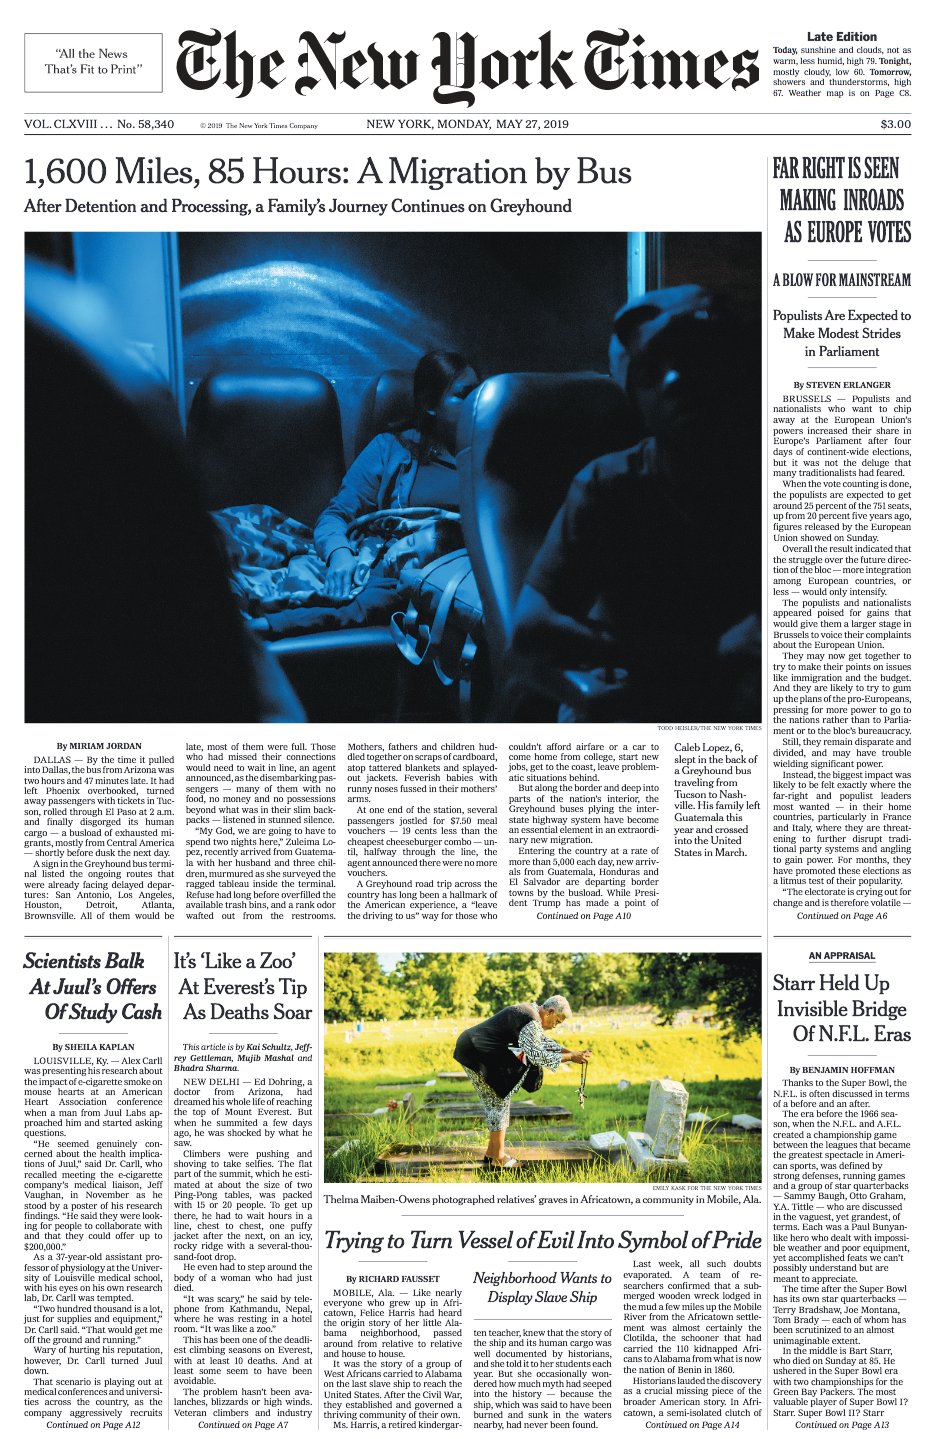 NYT_FrontPage_052719.png